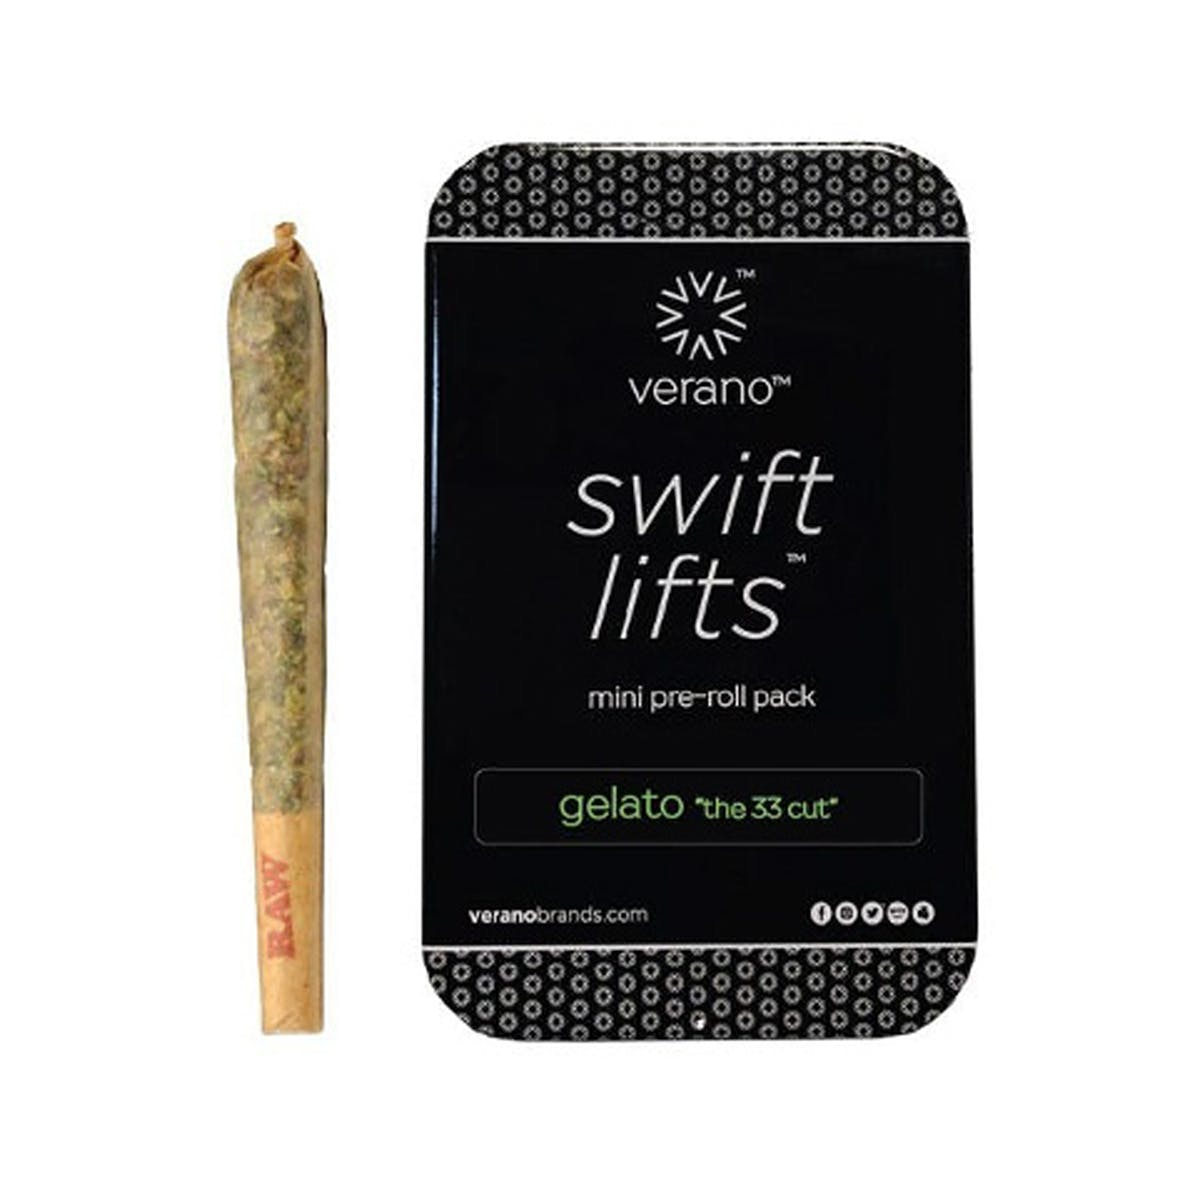 marijuana-dispensaries-altpharm-in-suitland-swift-liftsa-c2-84c-mini-pre-roll-pack-gelato